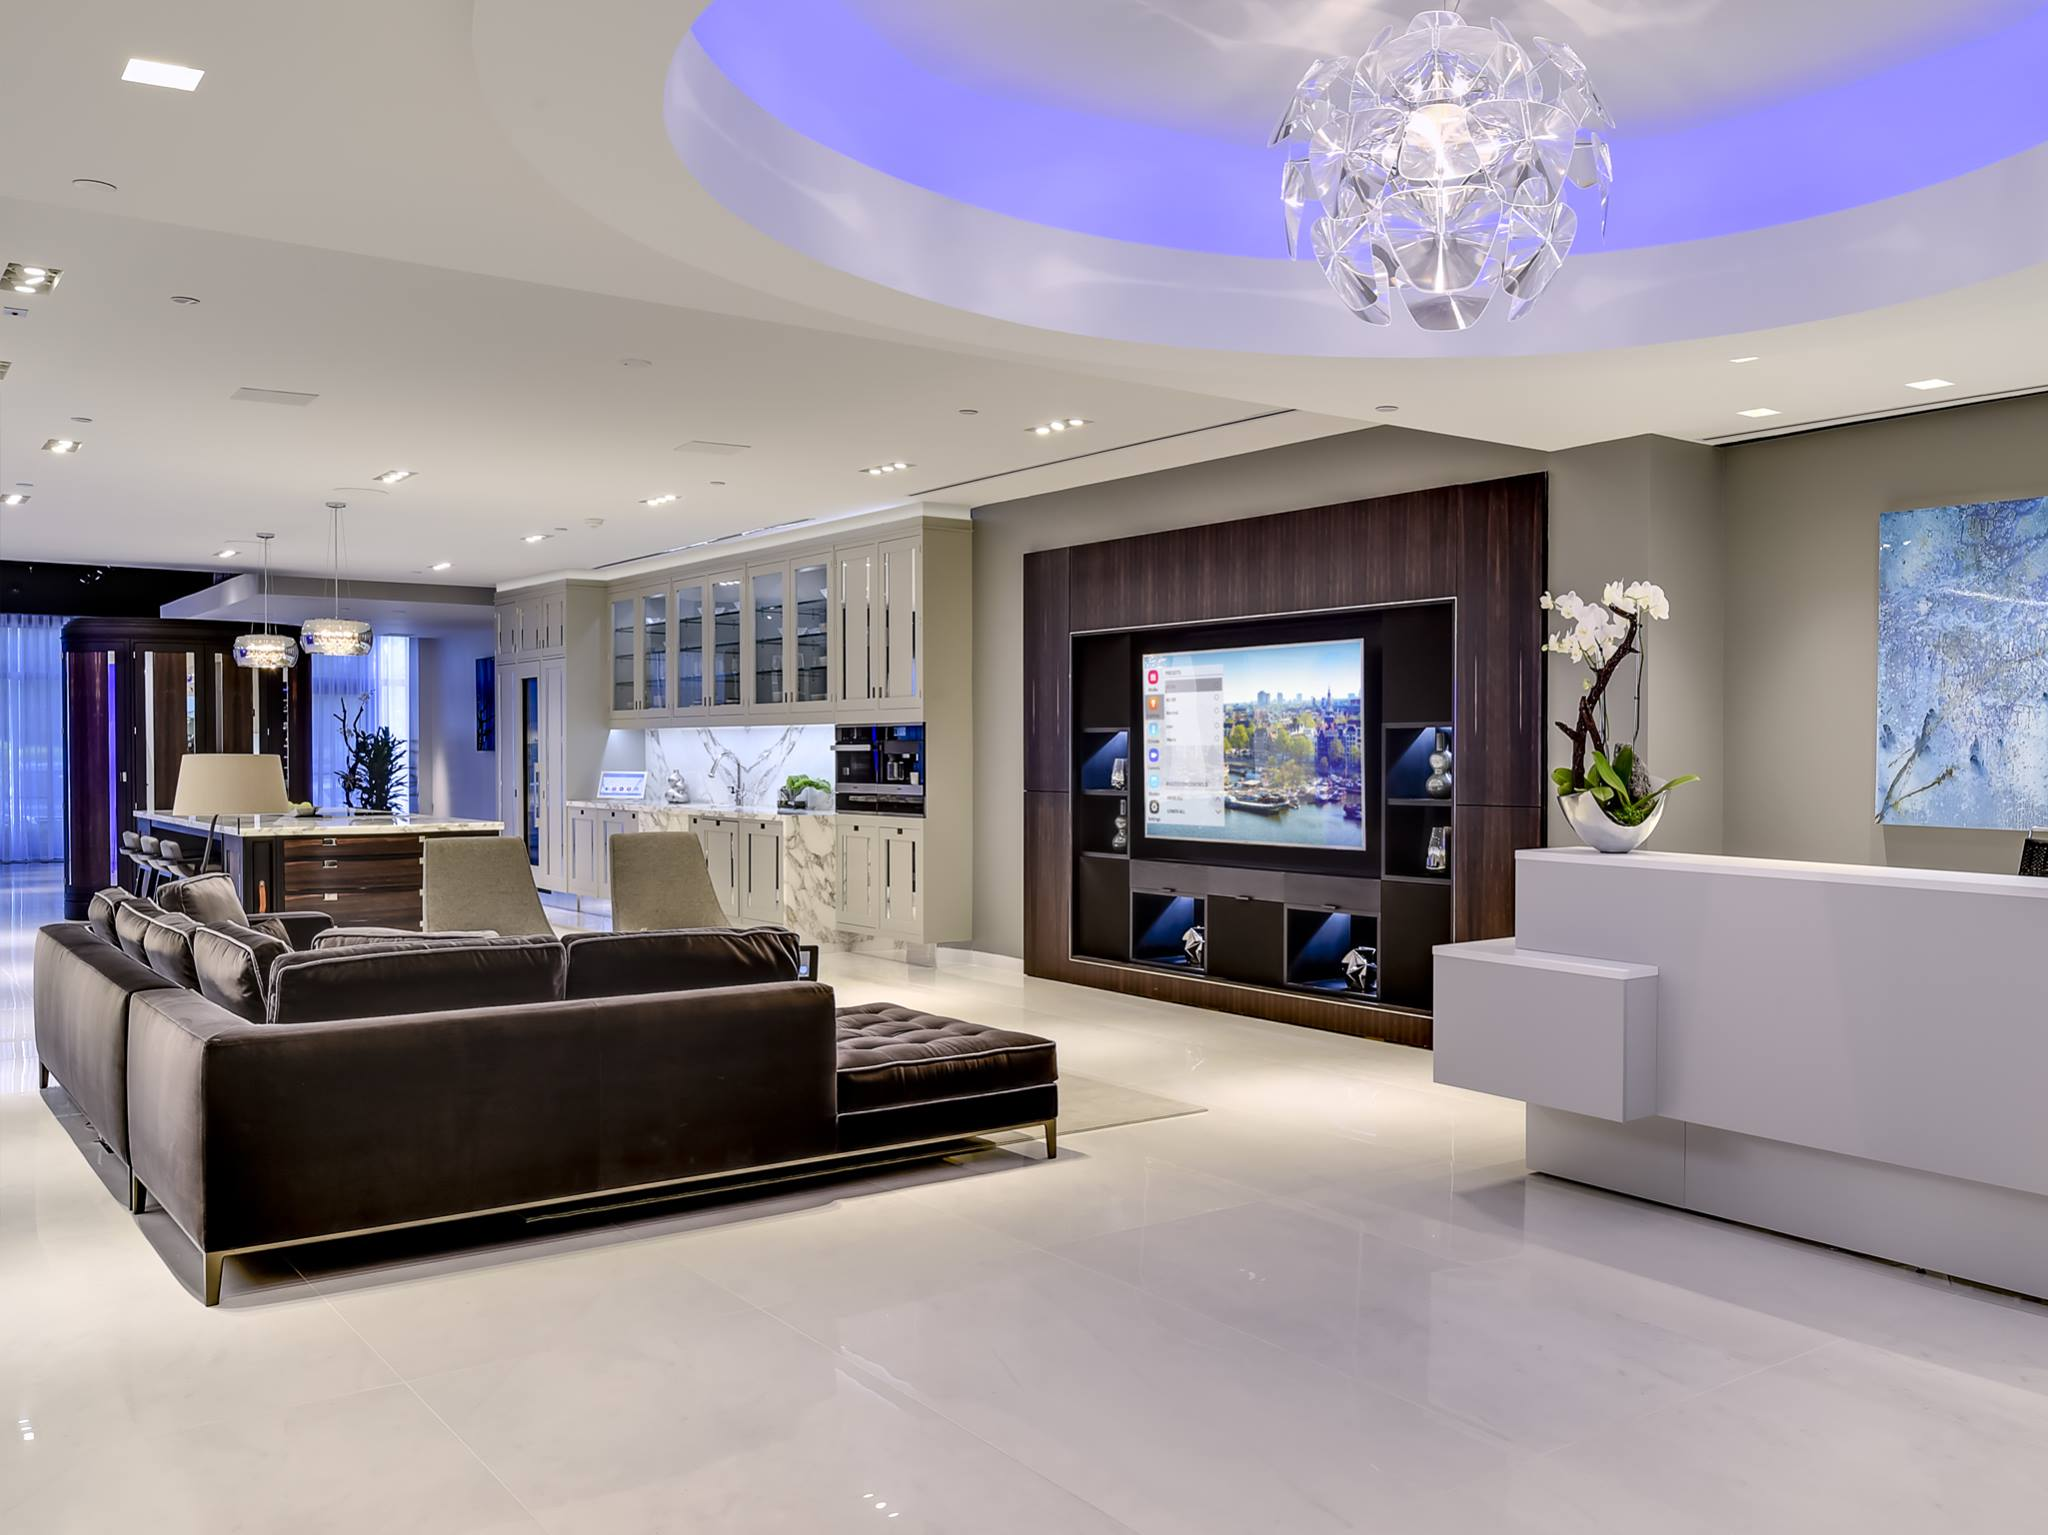 The latest home automation systems installed by an attentive team of professionals …